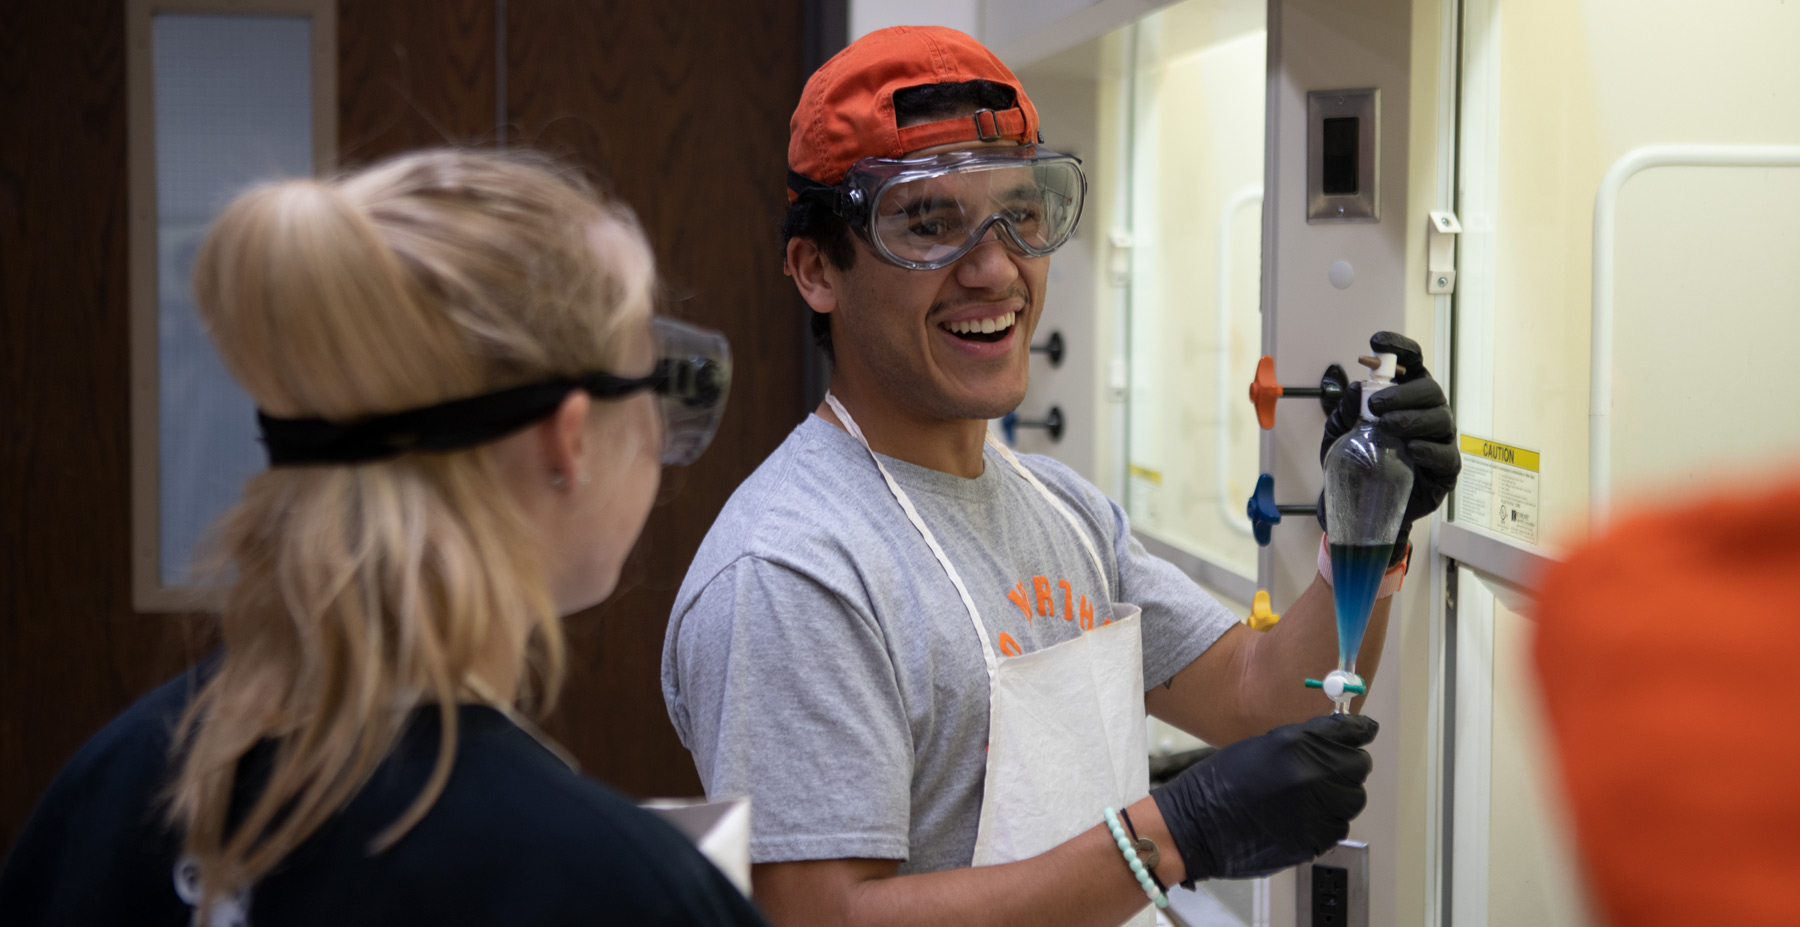 Chemistry students work at Ohio Northern University.